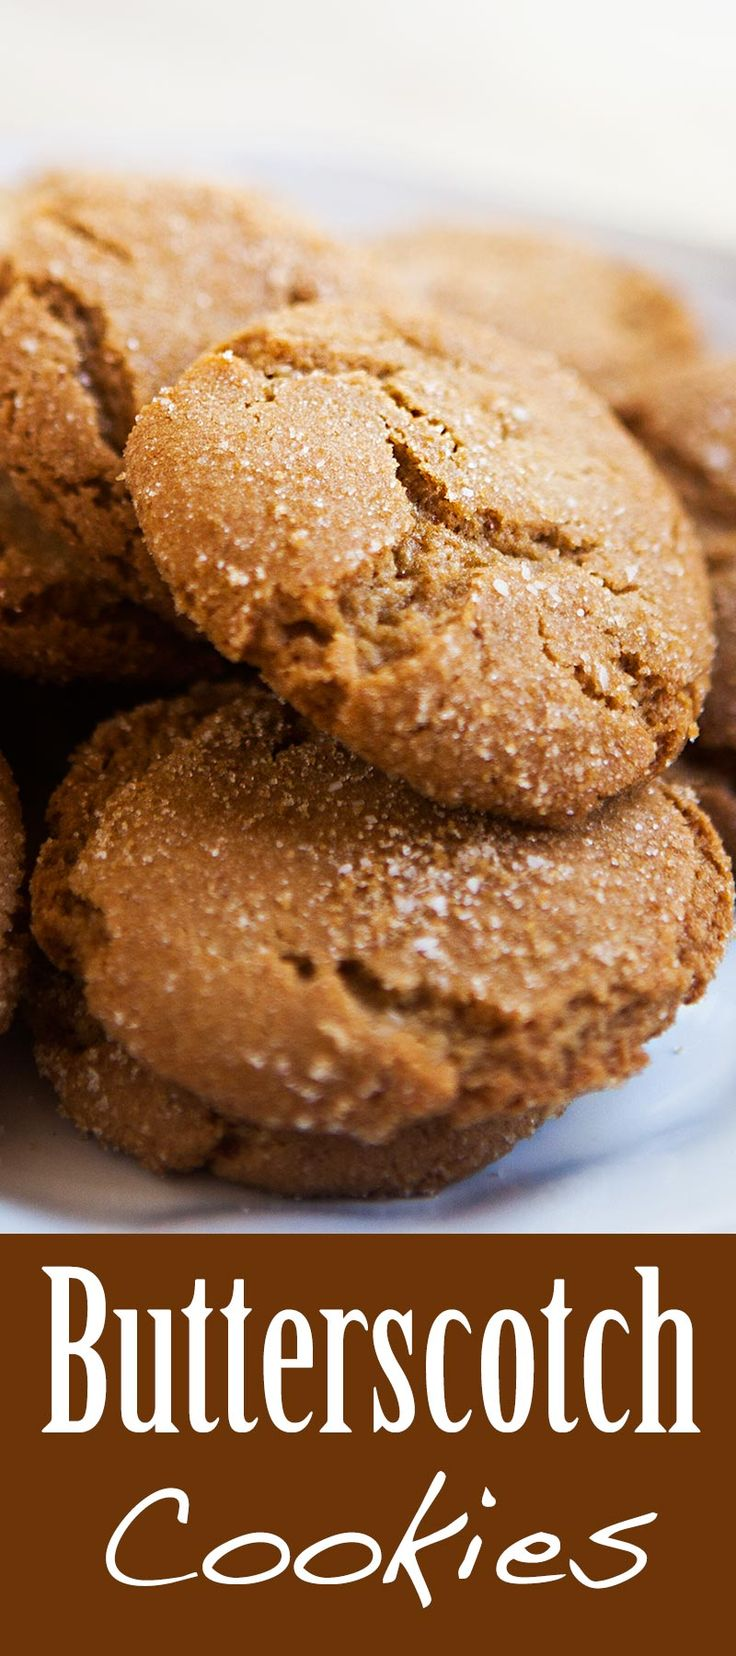 Crispy, crunchy butterscotch cookies! Made with brown sugar and browned butter. Perfect for dipping! On SimplyRecipes.com